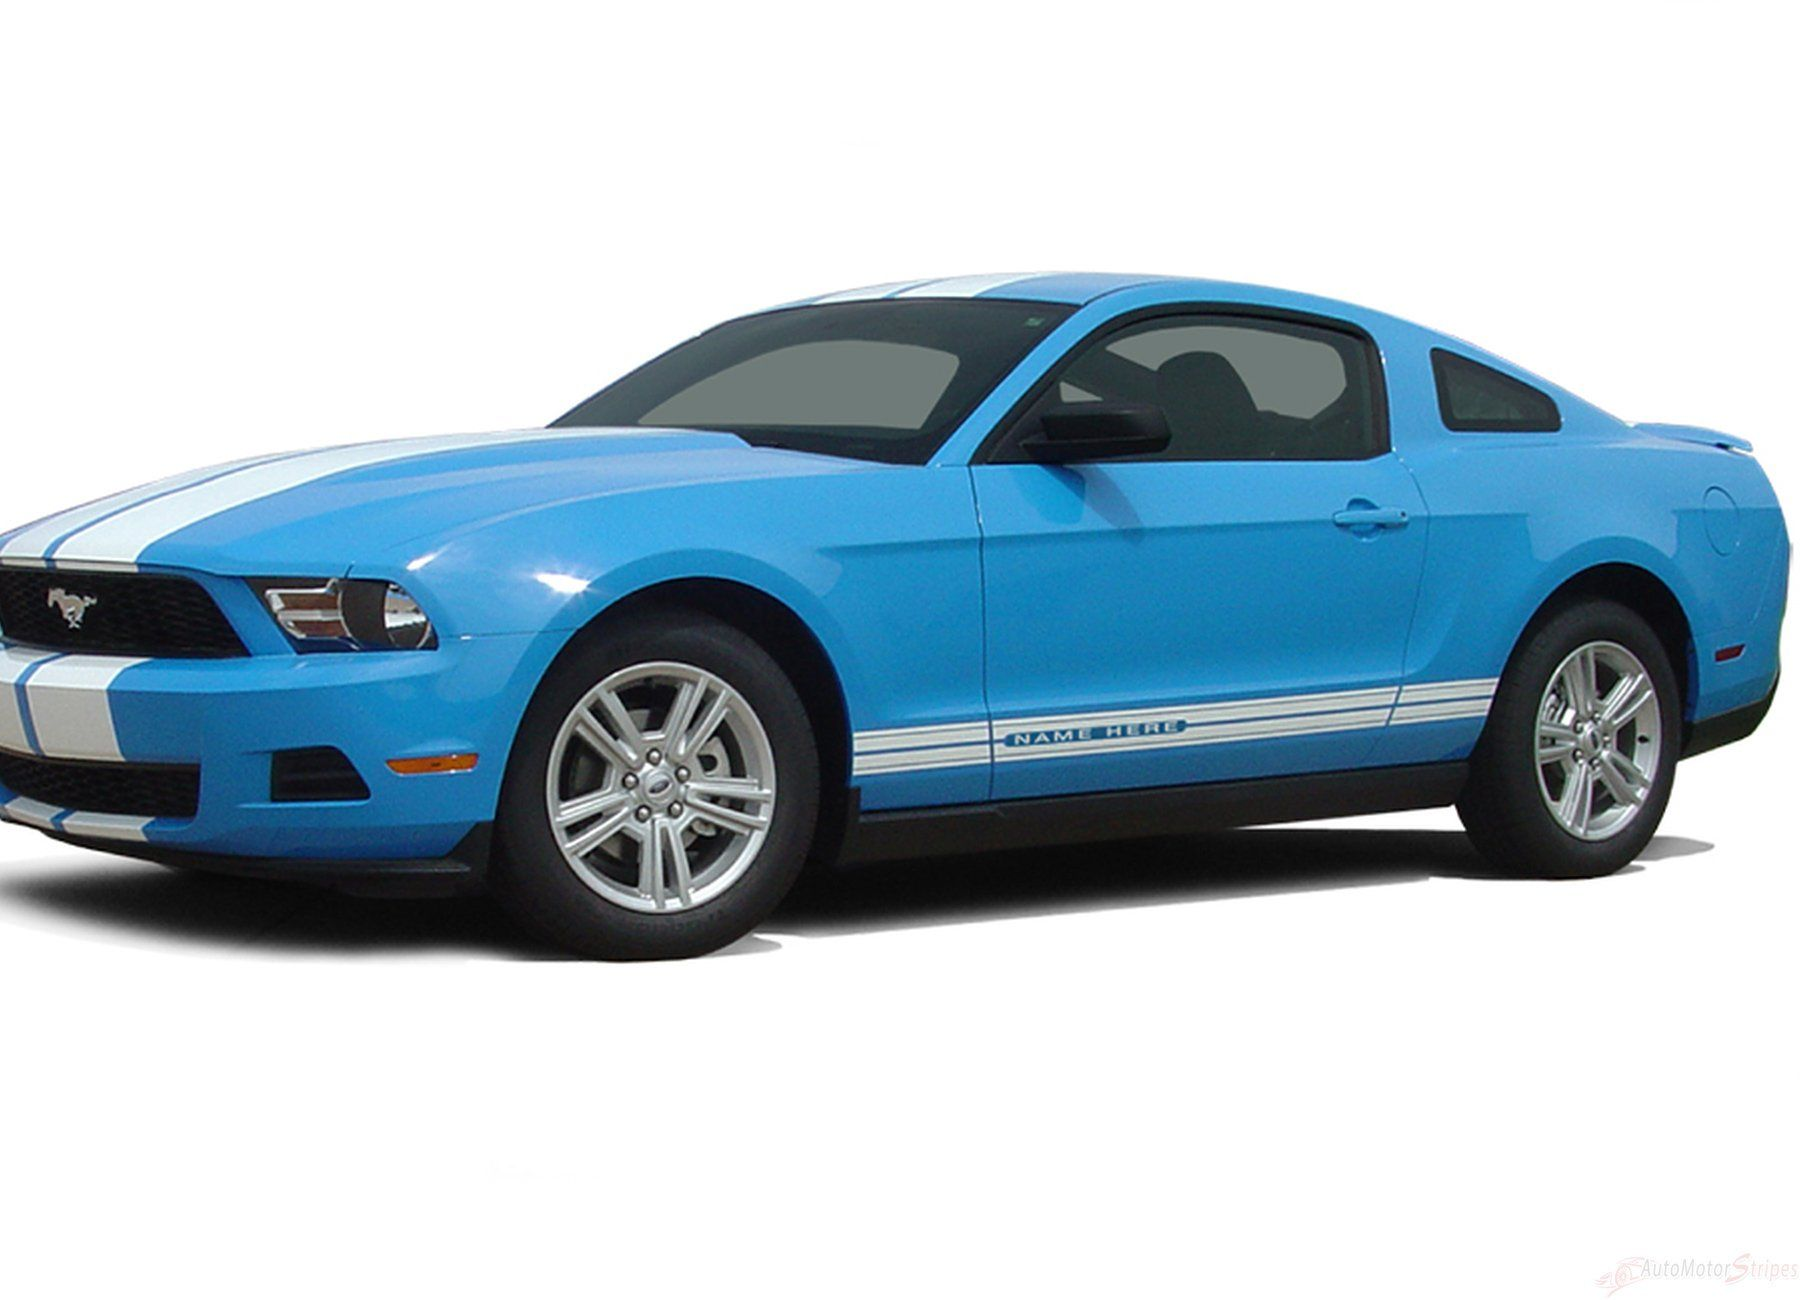 Ford Mustang Lower Door Side Accent Stripes Decals 2005 2006 2007 2008 2009